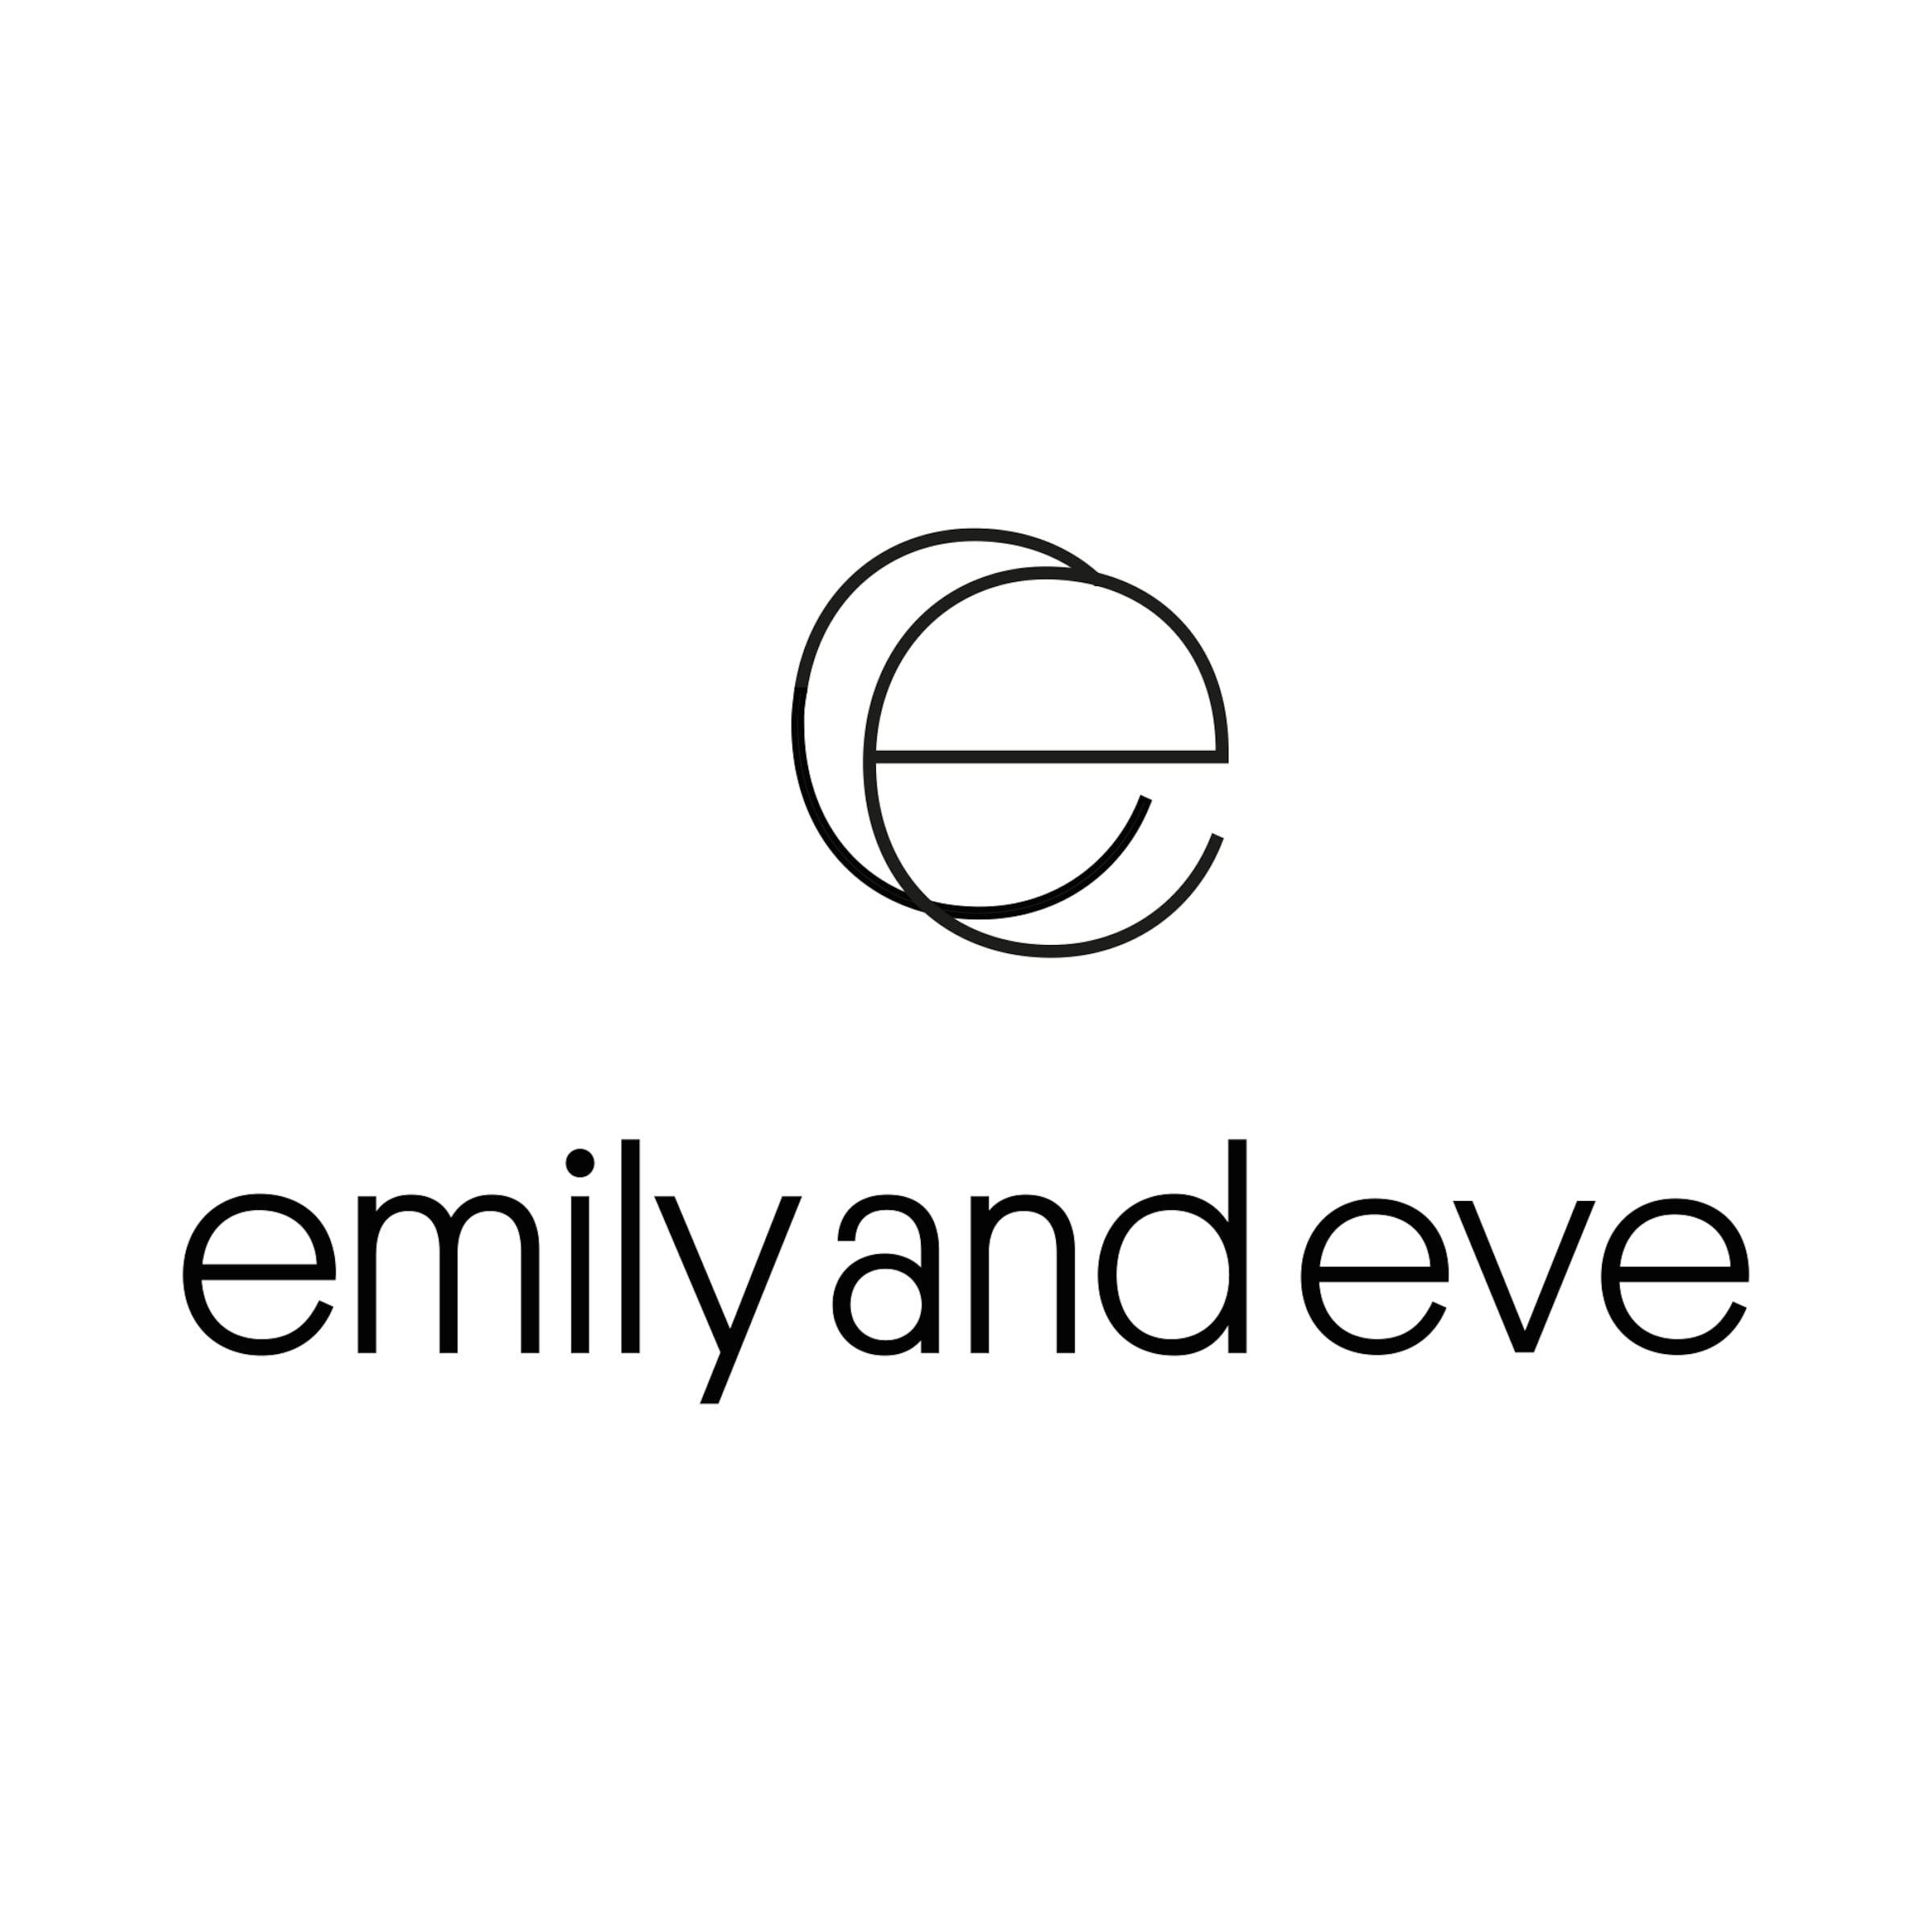 emily and eve